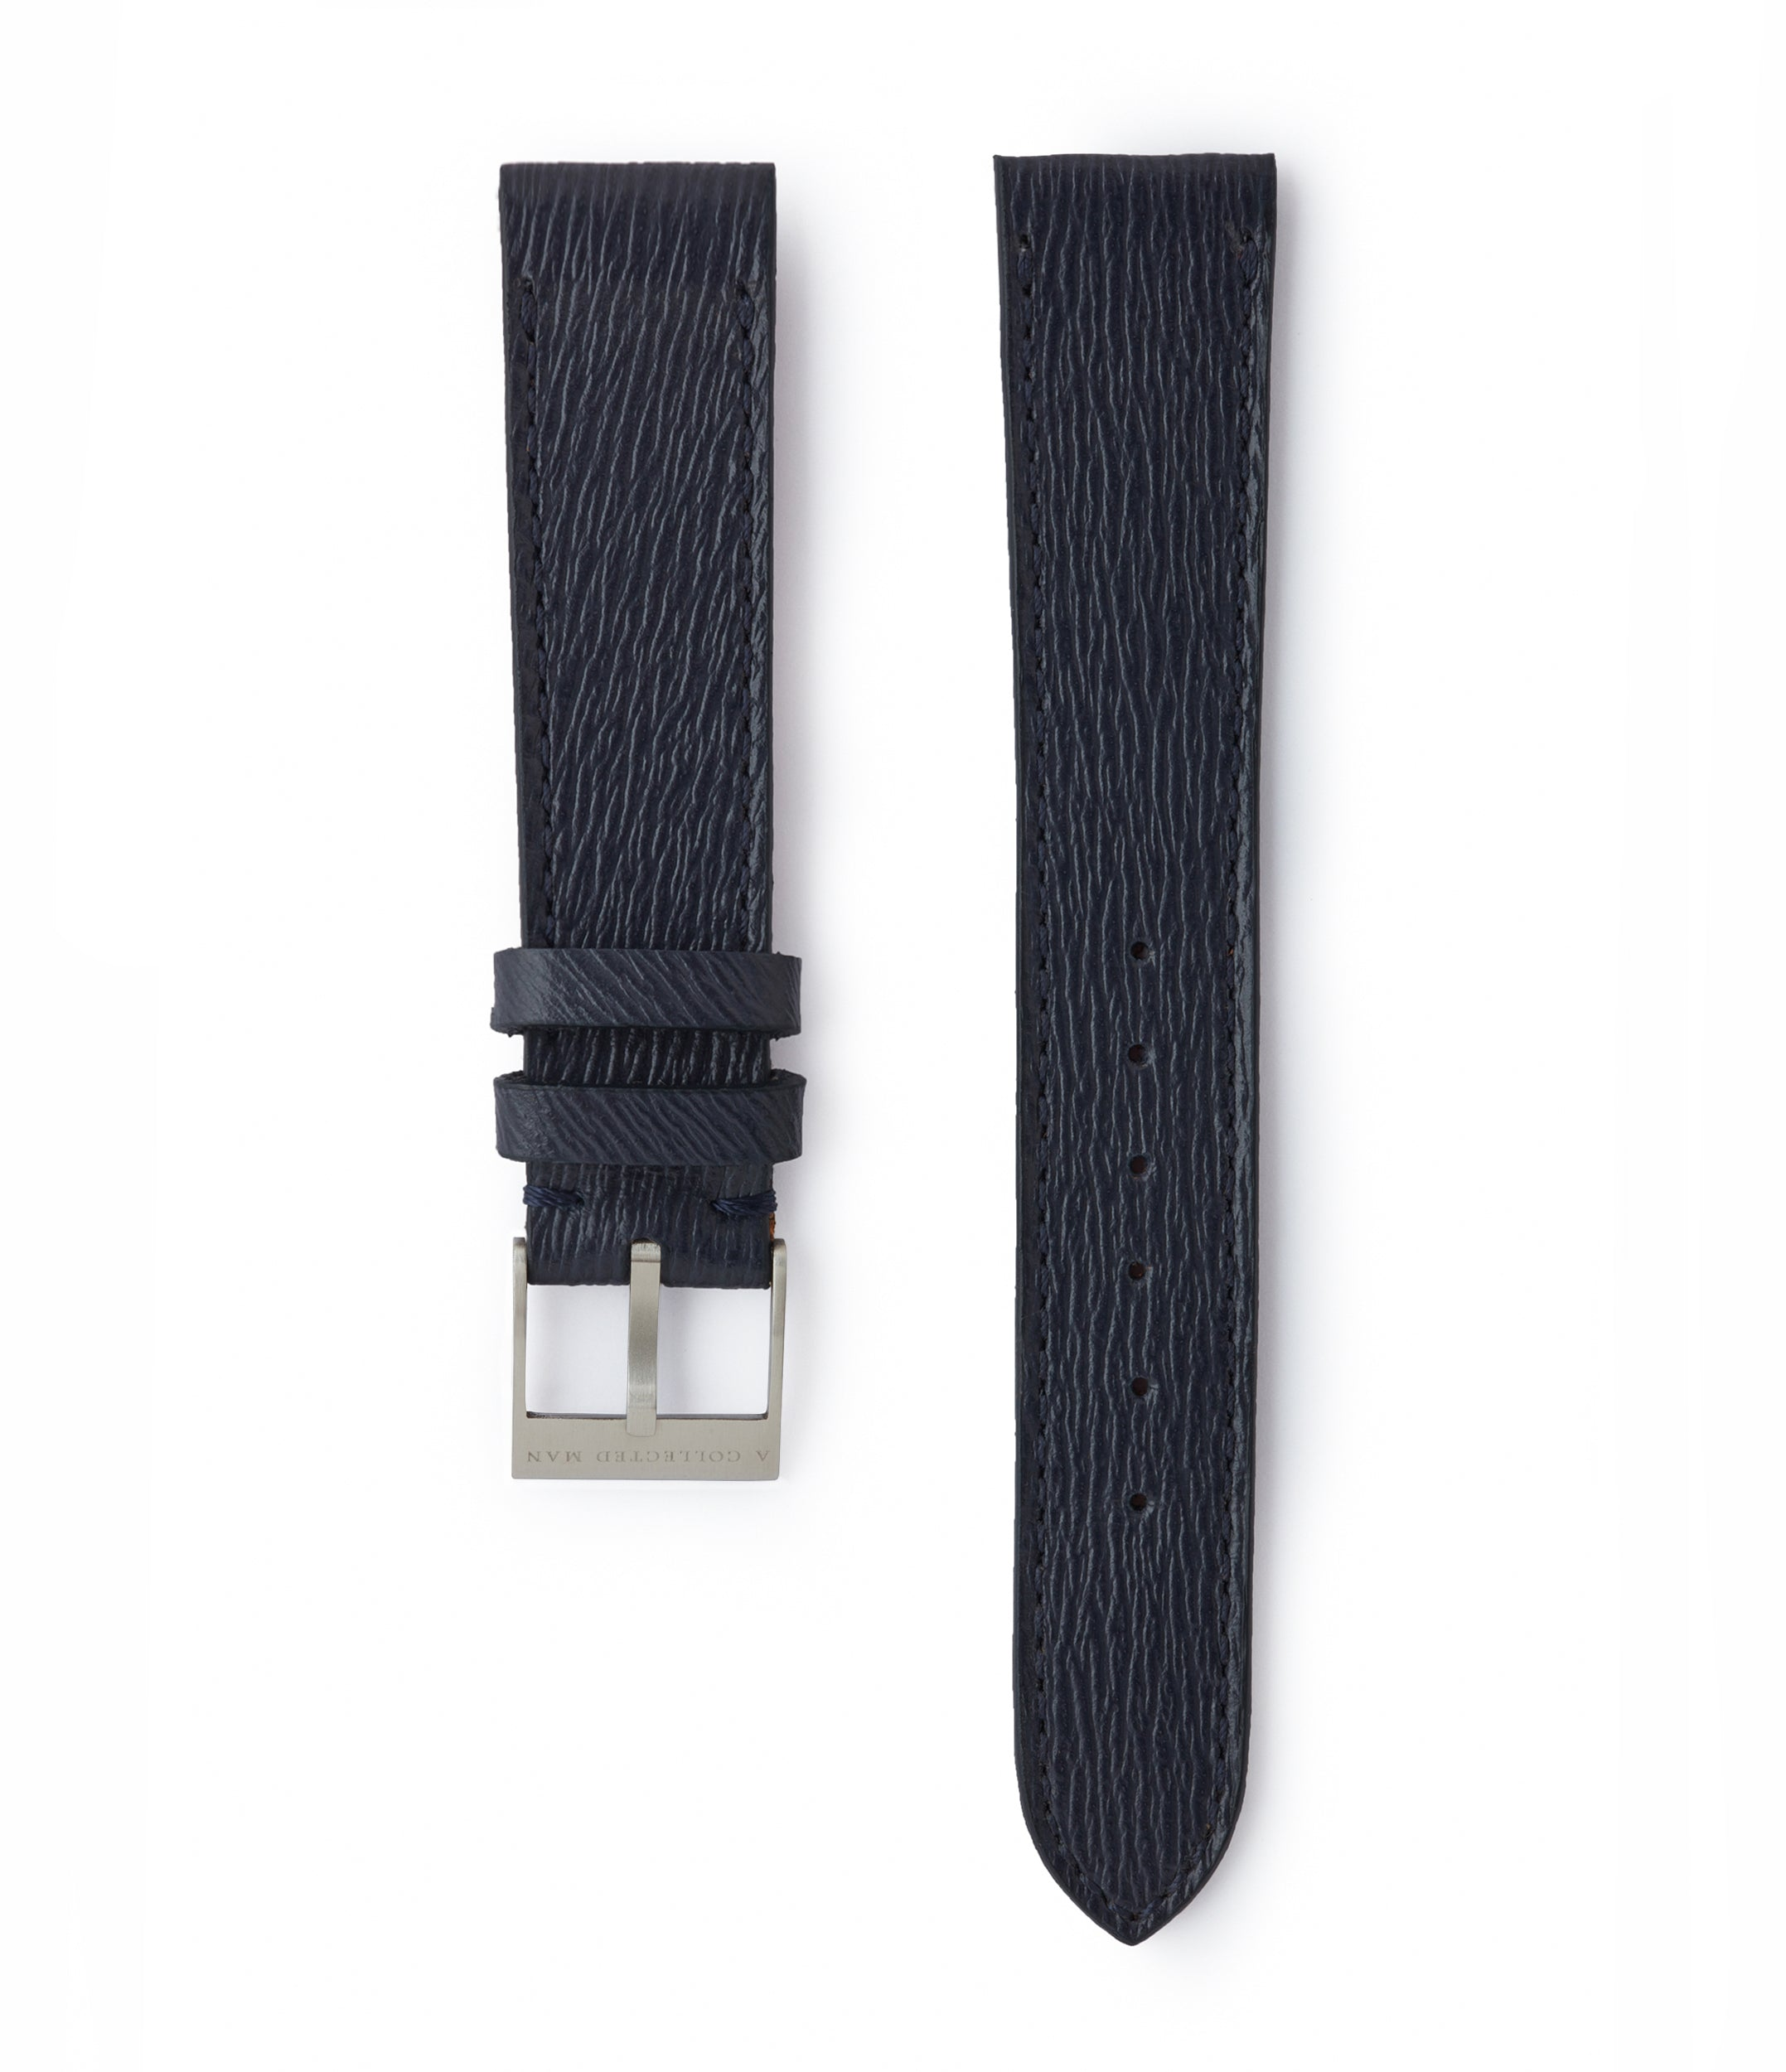 buy navy blue saffiano leather watch strap 18mm Santorini JPM for sale order online at A Collected Man London